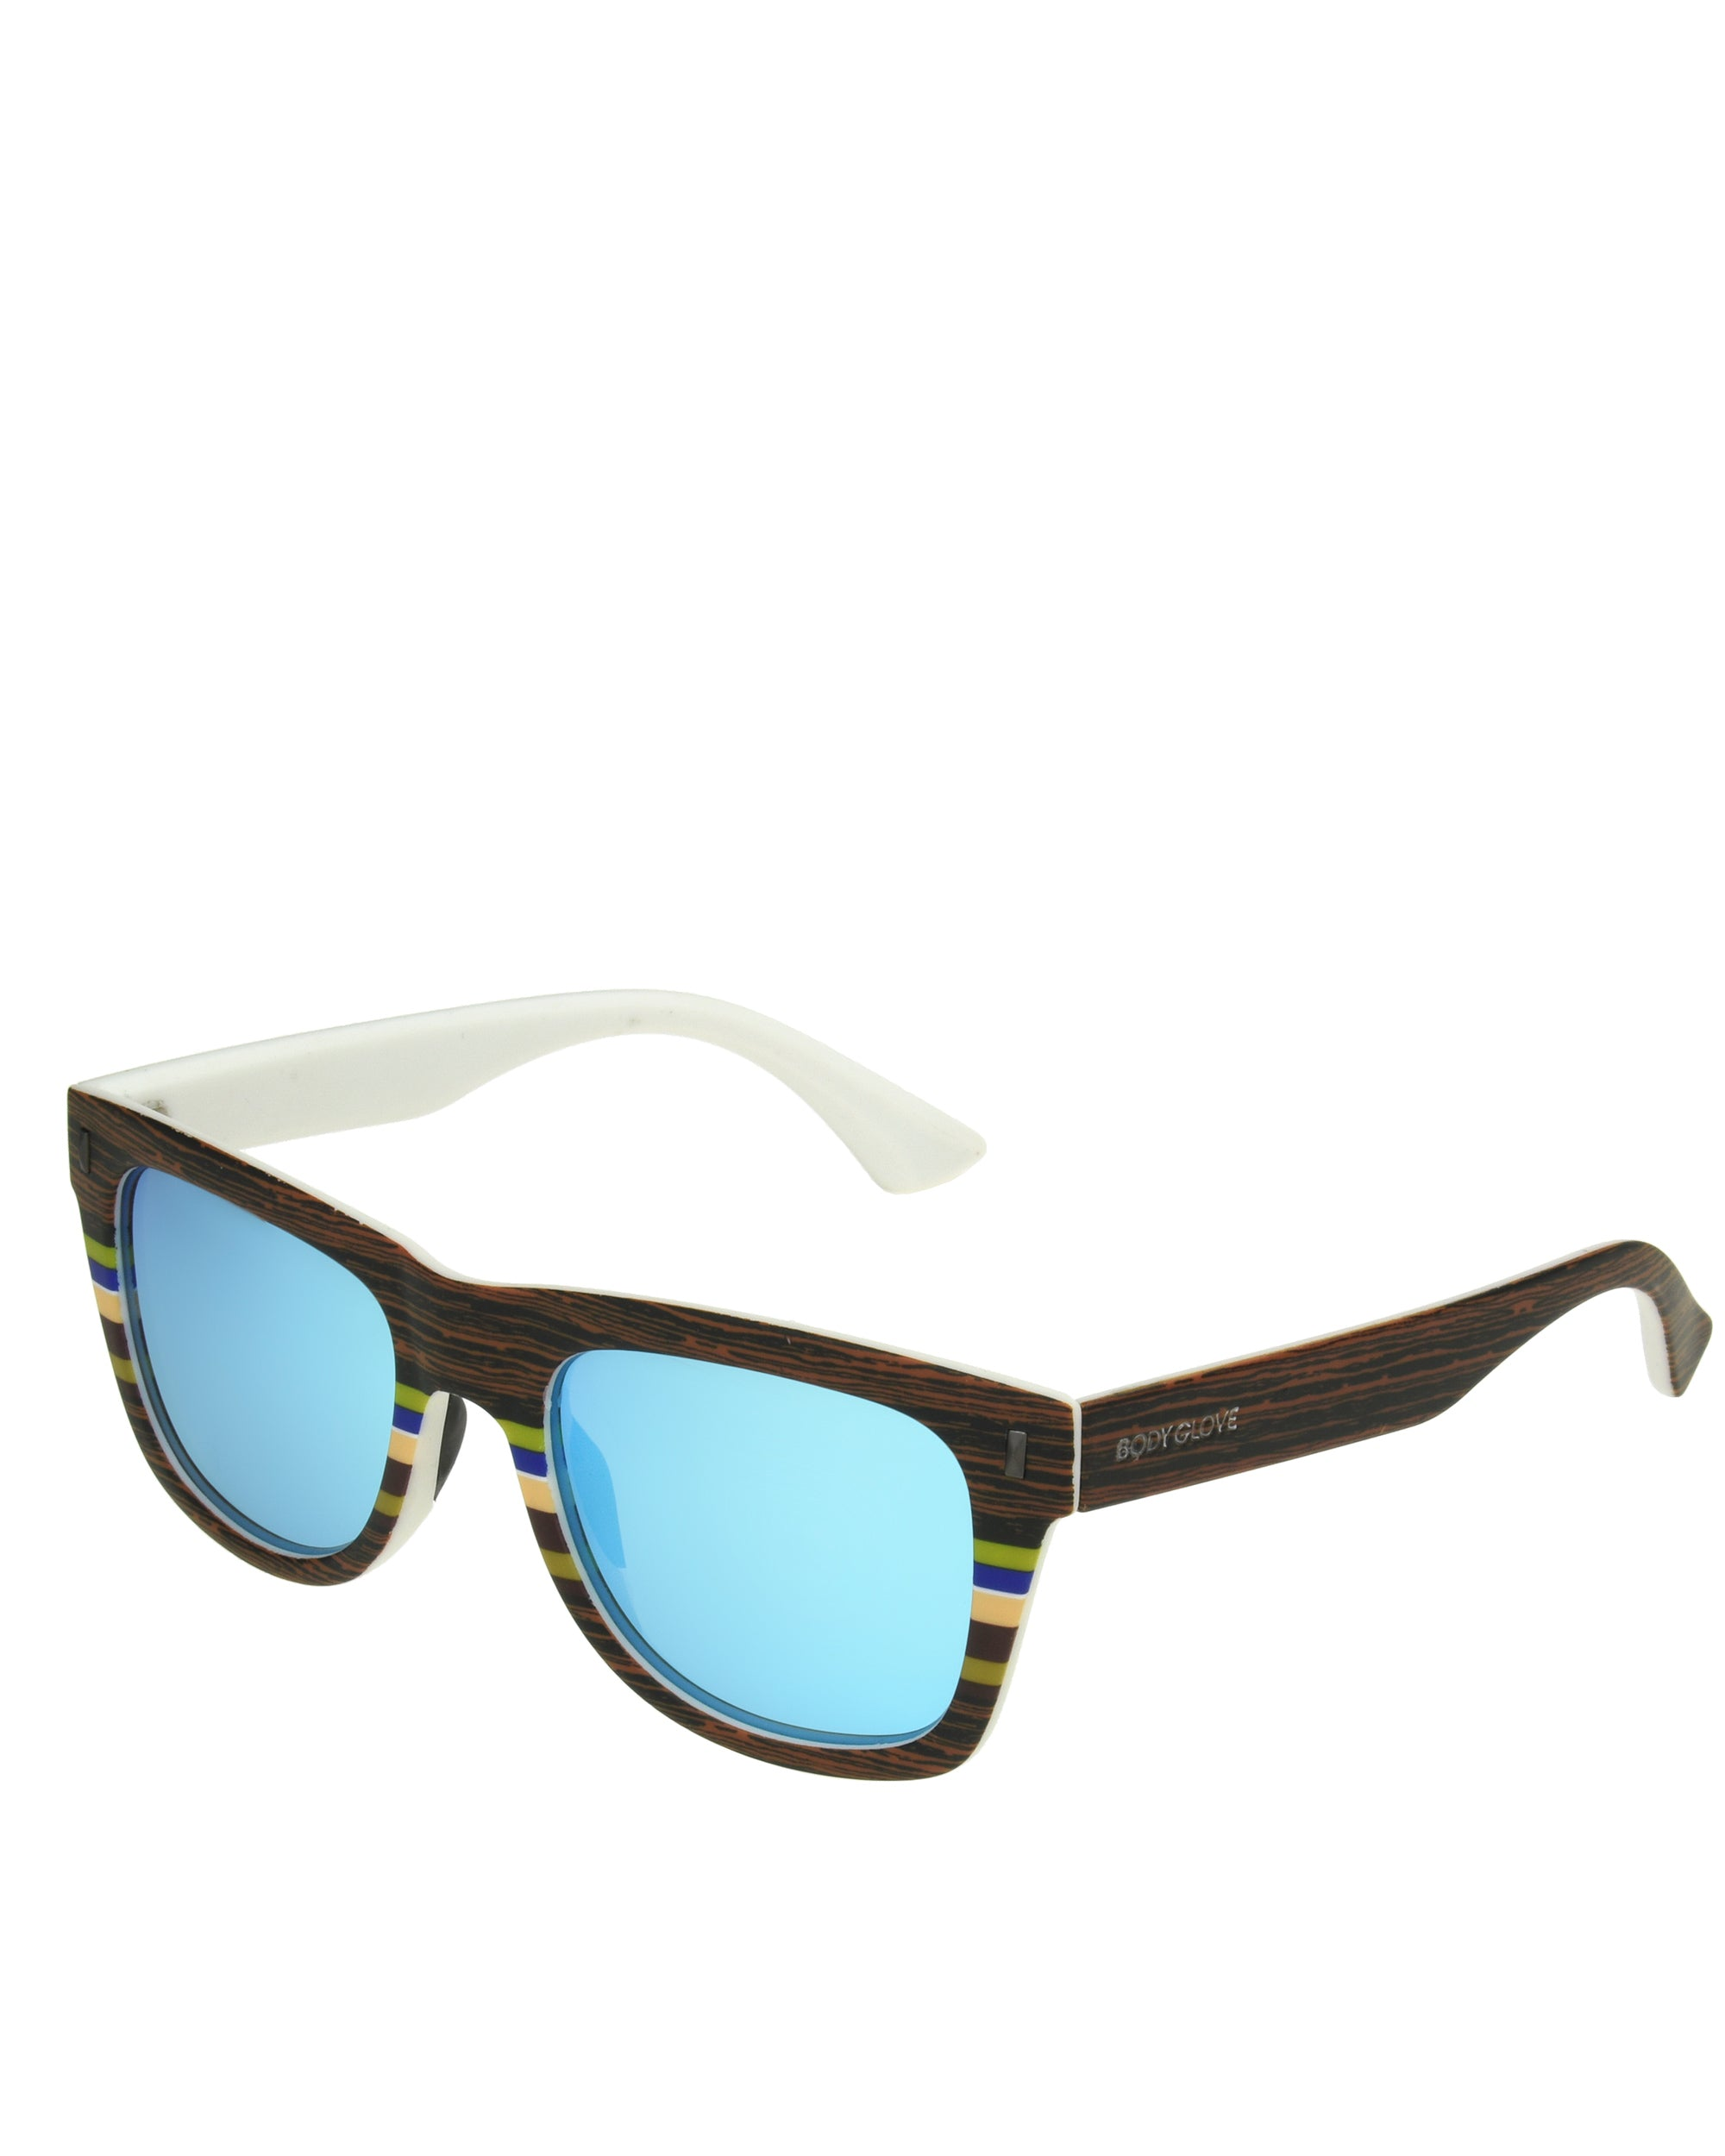 Men's BGM1091 Polarized Sunglasses - Matte Wood